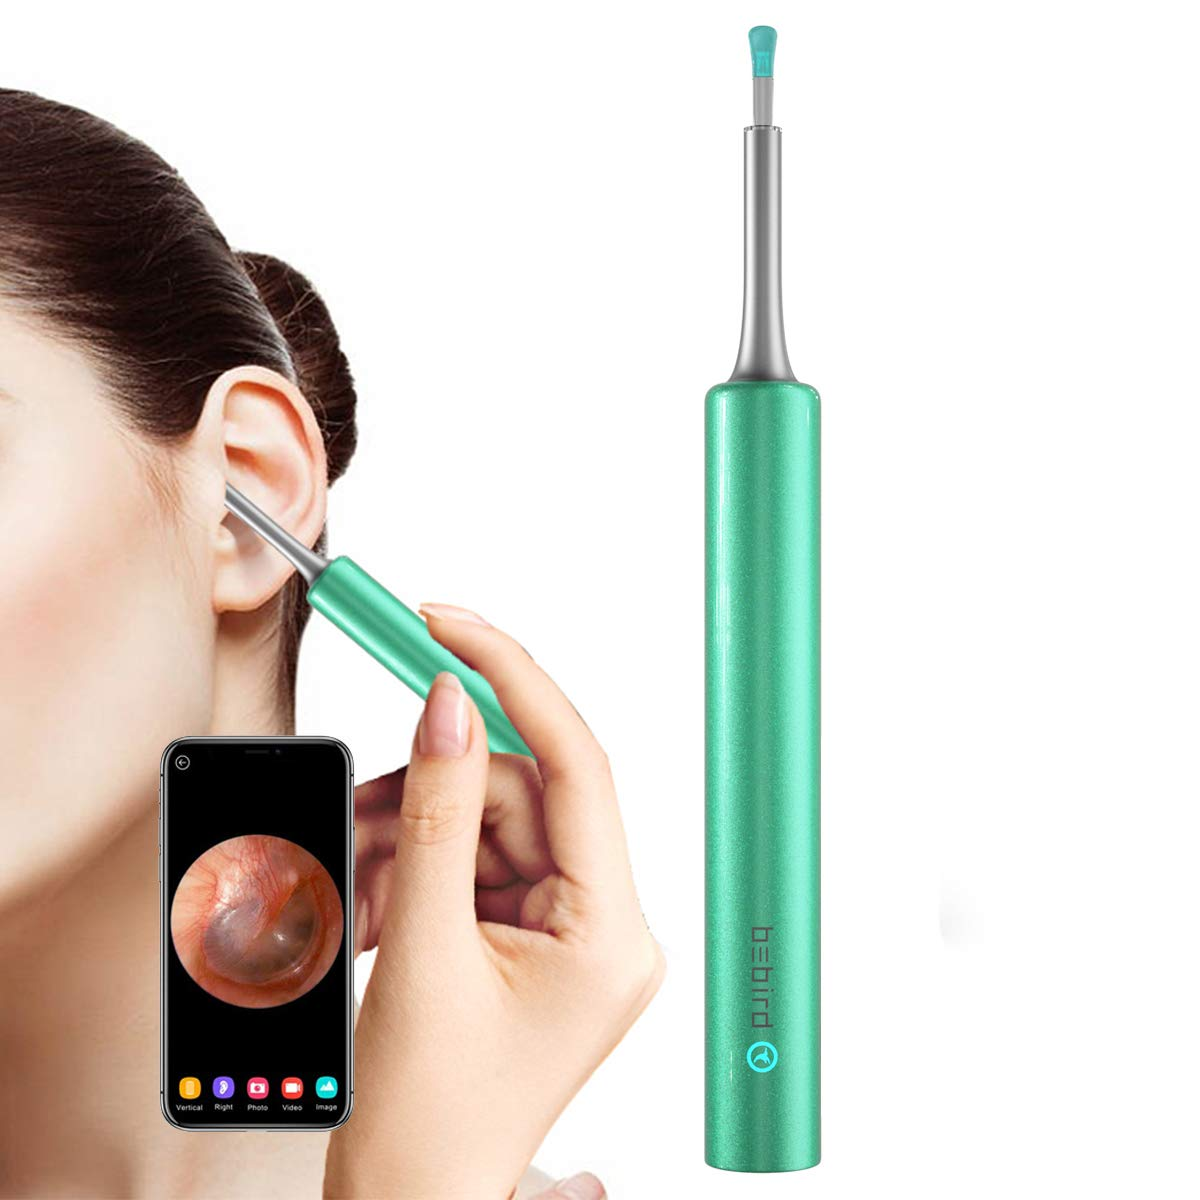 BEBIRD C3 Ear Cleaner, Ear Wax Removal Tool Wireless Otoscope with 1080P HD Waterproof Digital Endoscope with 6 LED Light, 3 Ear Cleaning Kits Mom Gadgetsfor Baby Ear CleanerChecking (Blue)